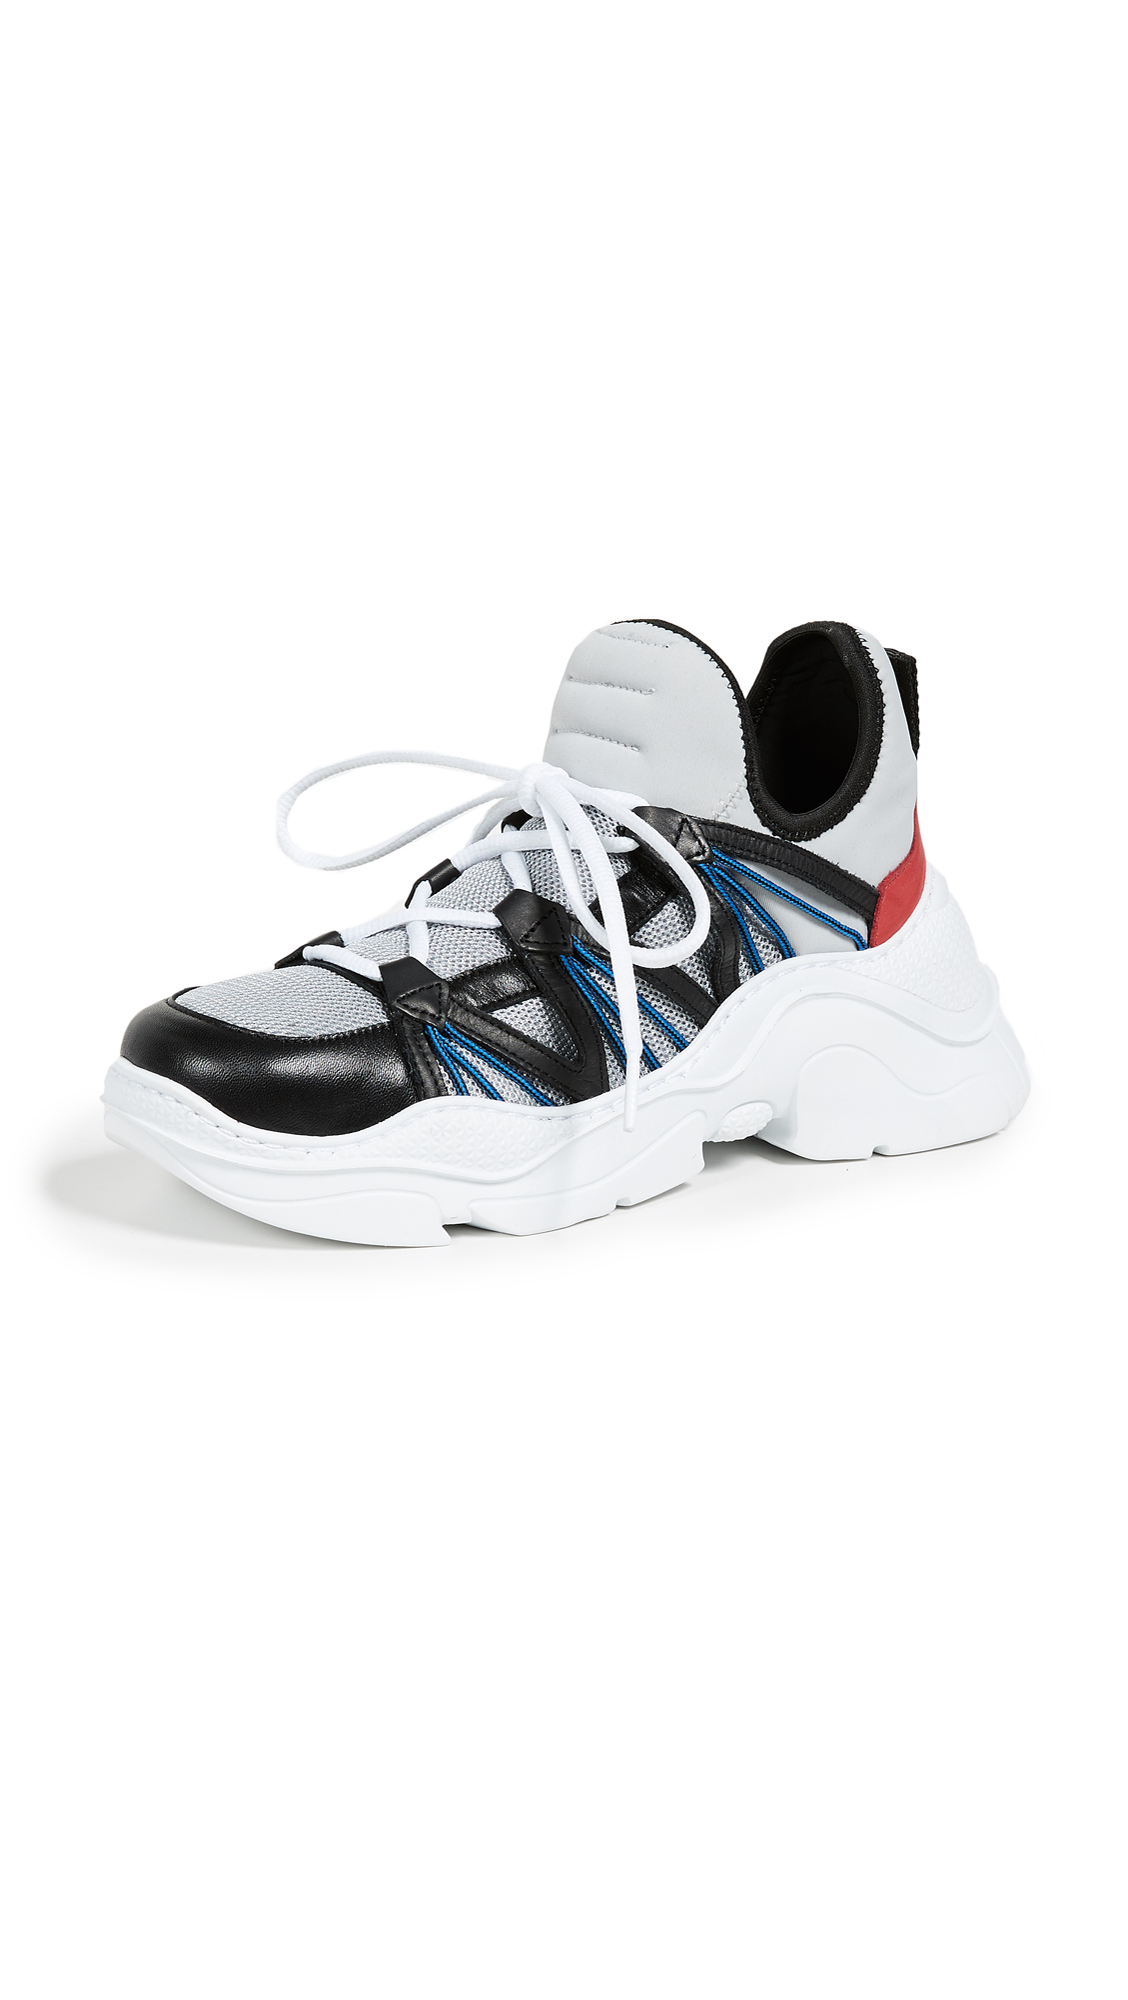 Schutz Multicolor Sneakers - Silver/Black